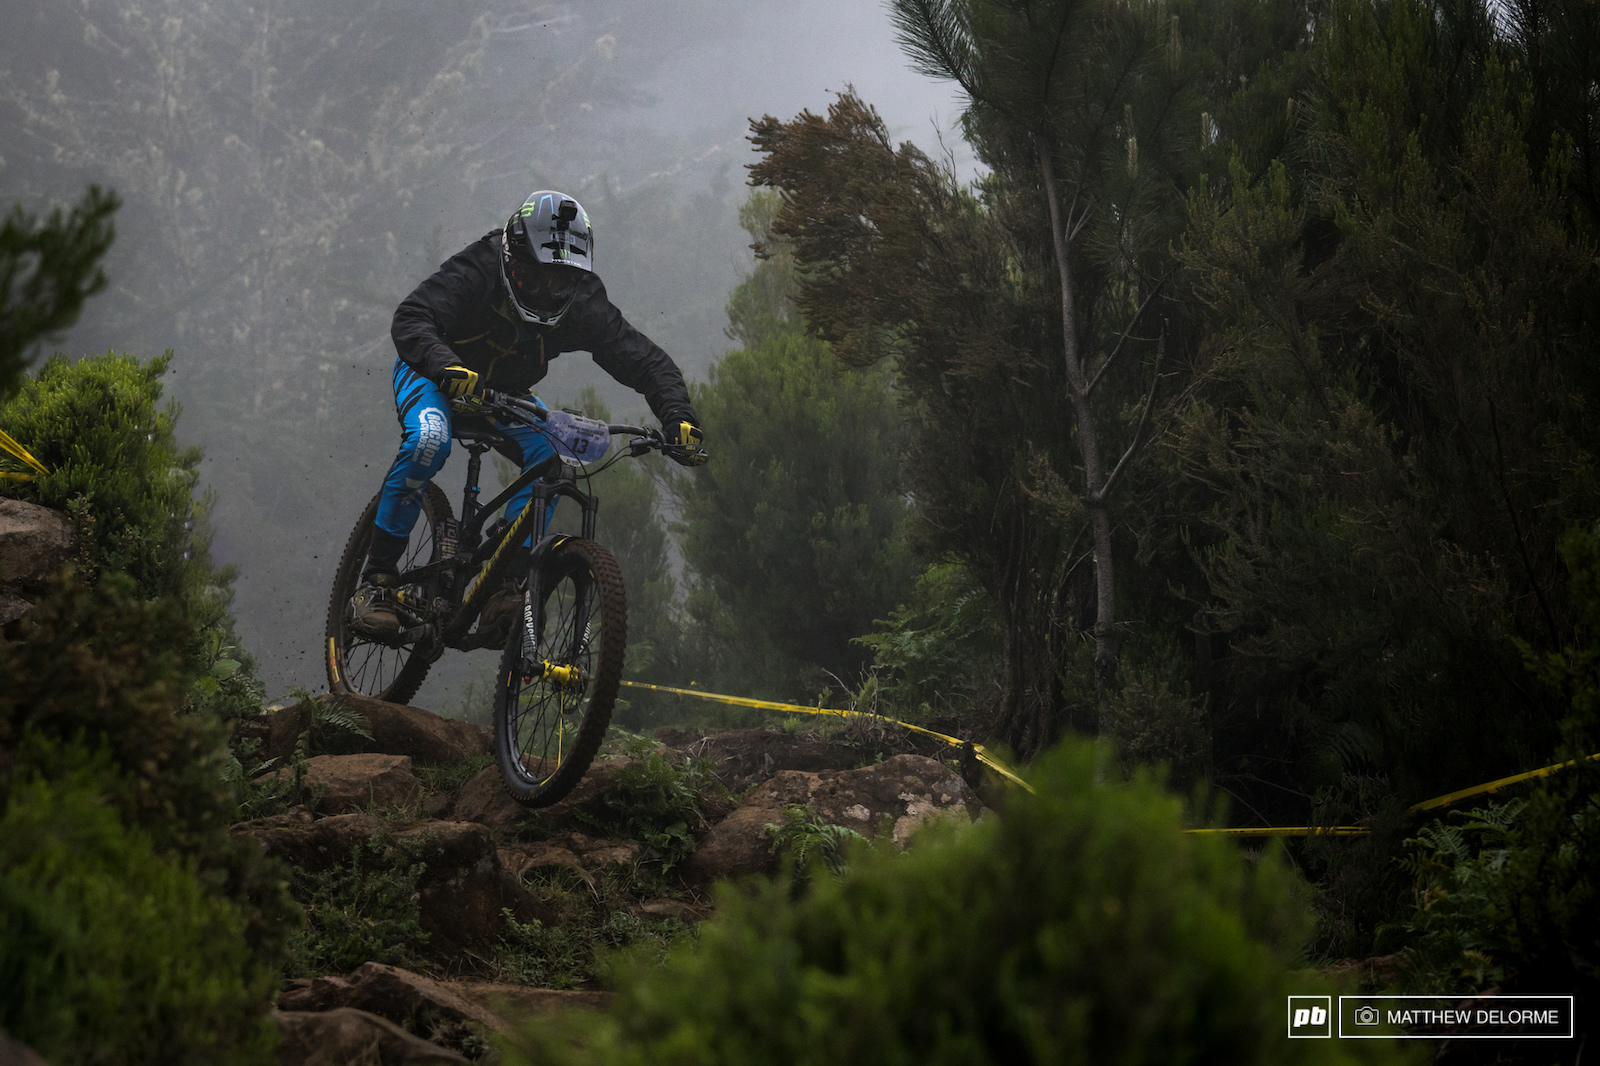 Sam Hill was hoping for a bit more aggressive riding after day one. Hopefully day two gave him want he wanted.